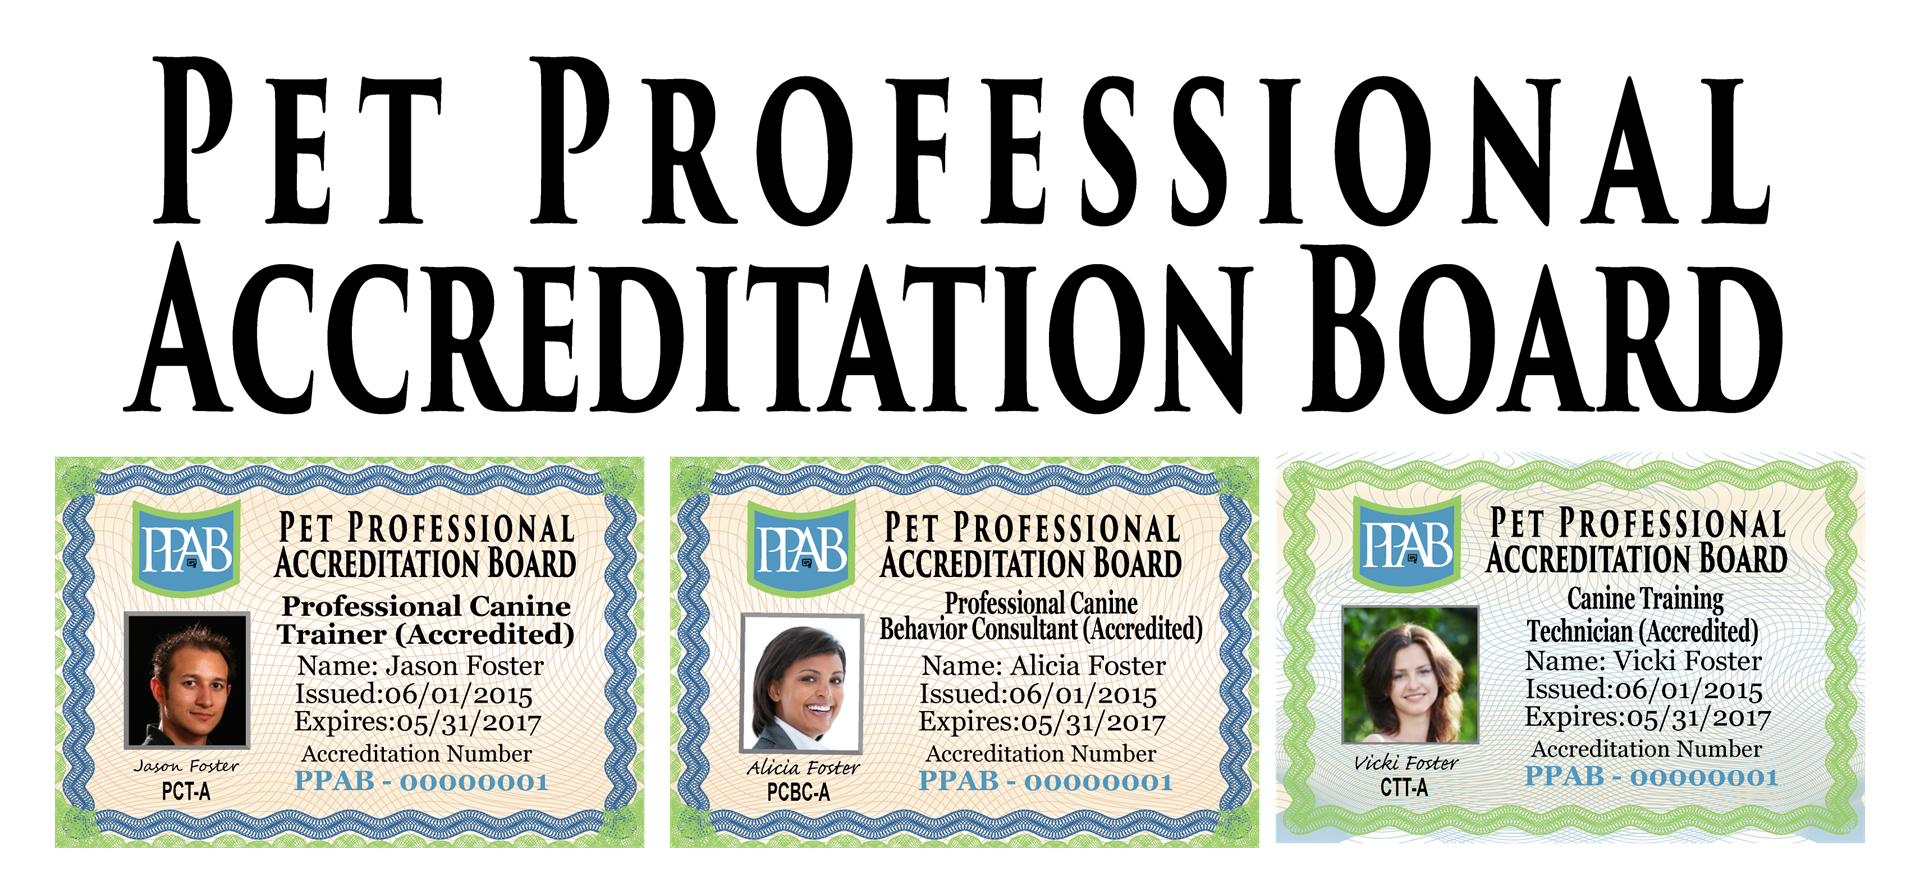 The Pet Professional Accreditation Board Home